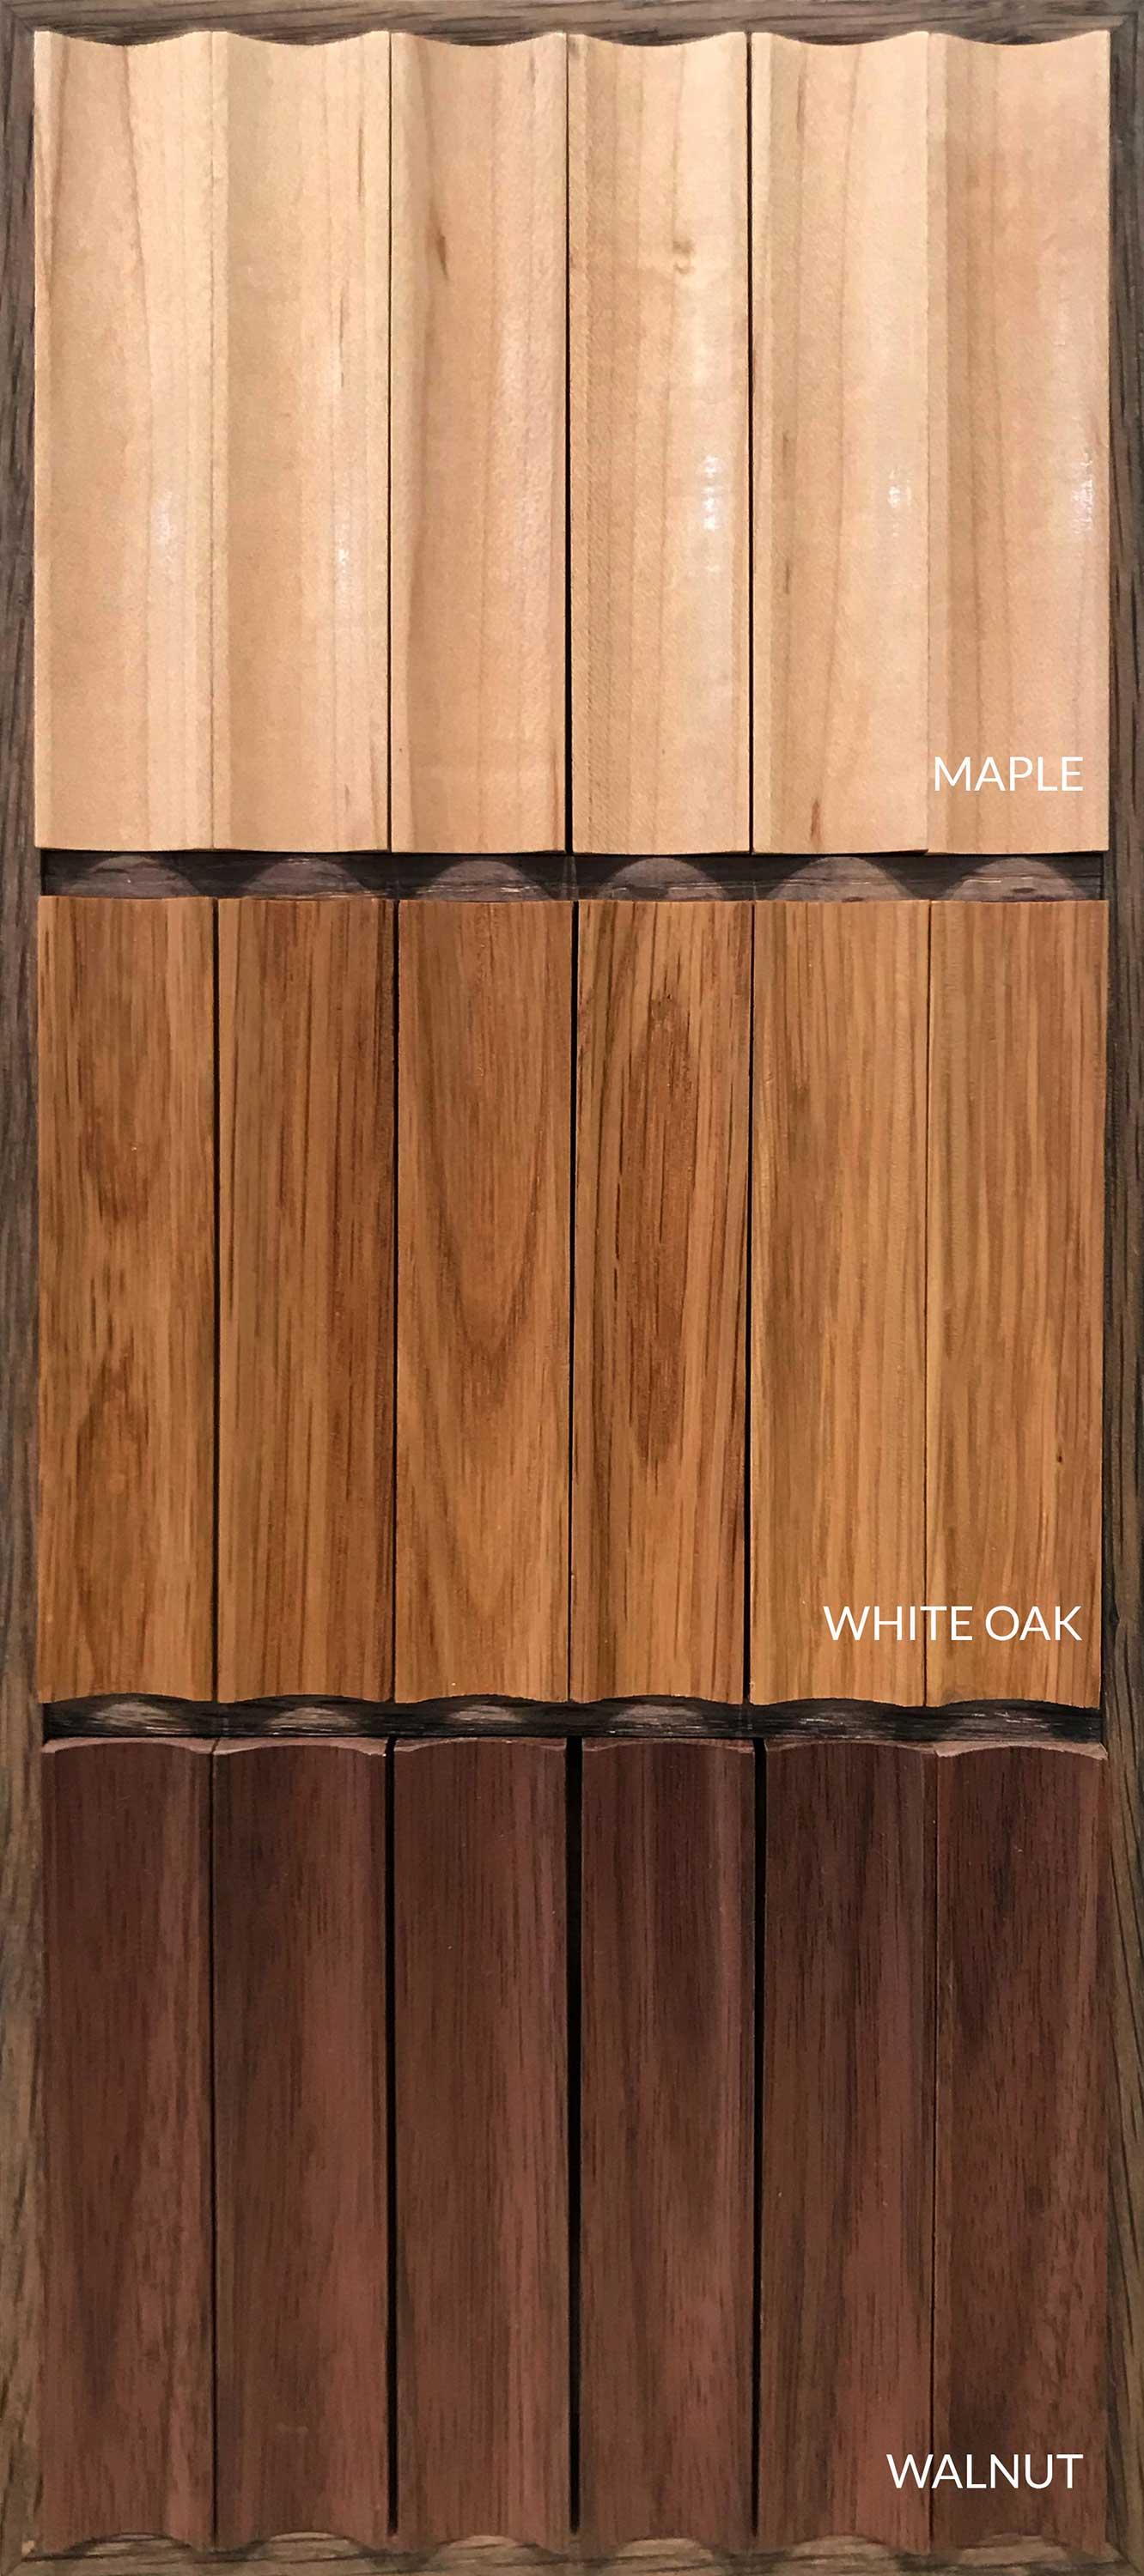 INDO_Pilar_Natural_Finish_Samples.jpg